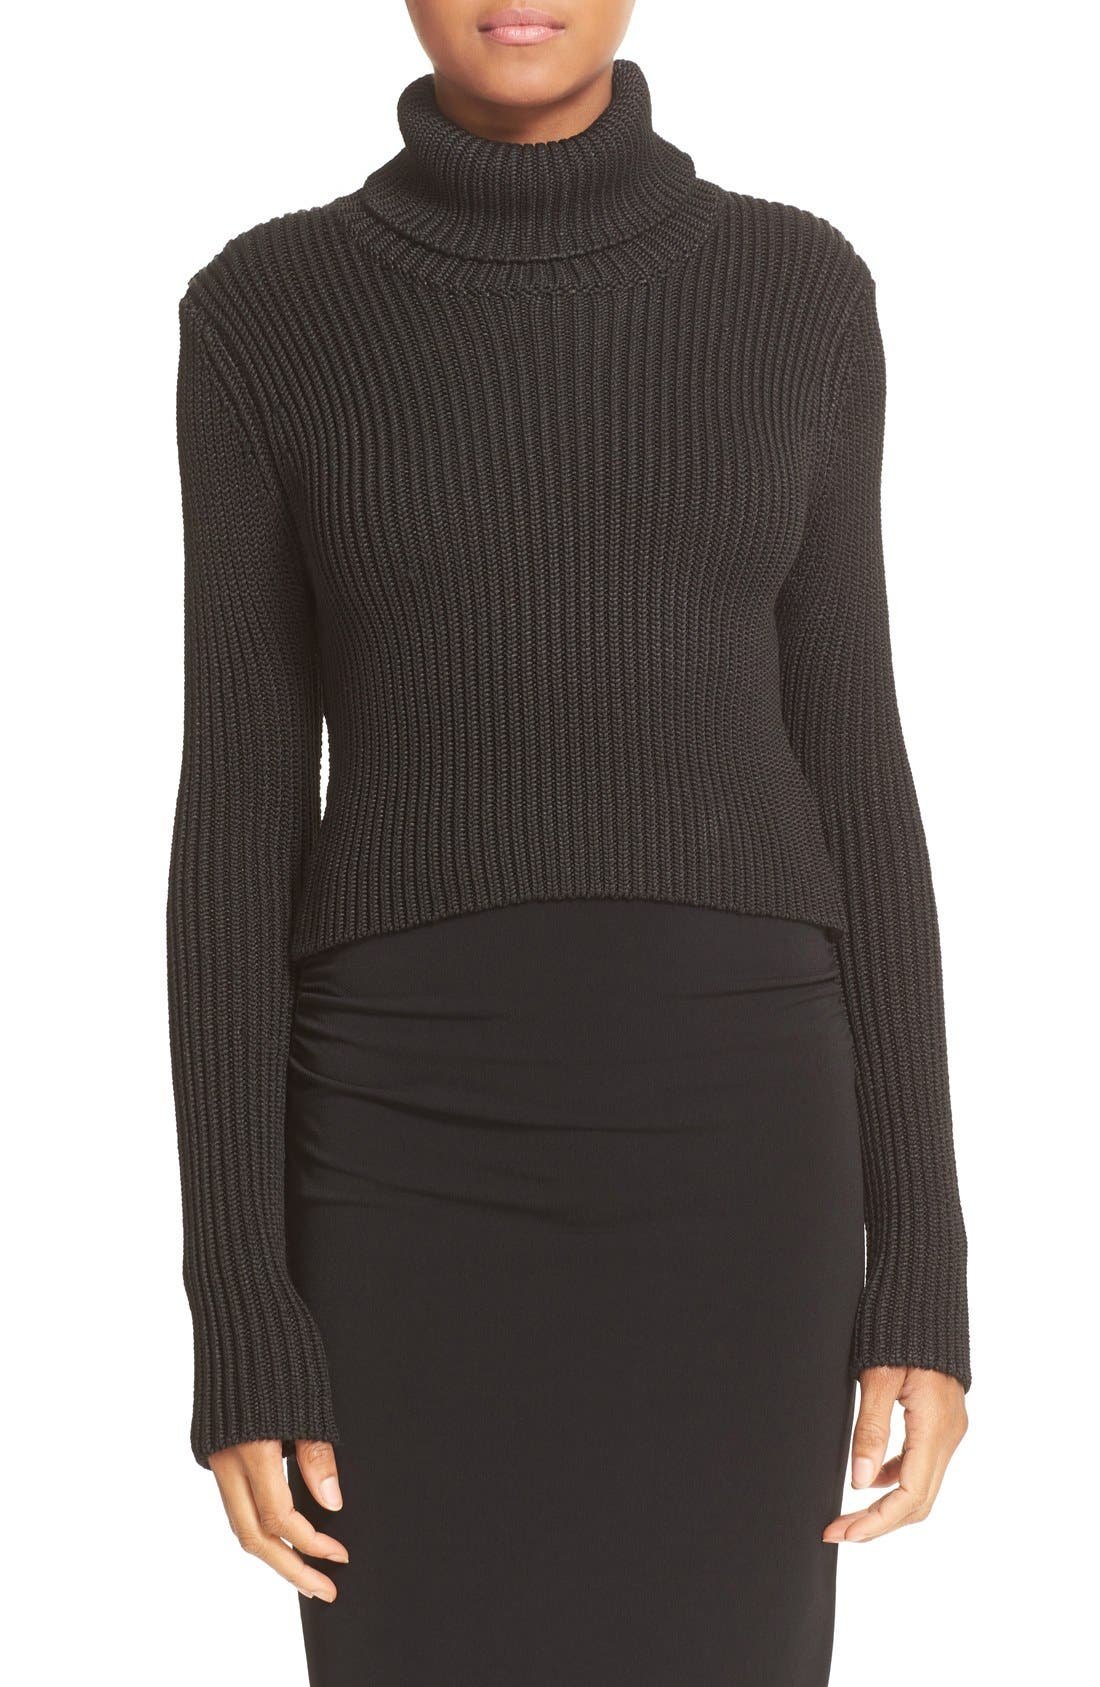 Alternate Image 1 Selected - Alice + Olivia Sierra Crop Rib Knit Turtleneck